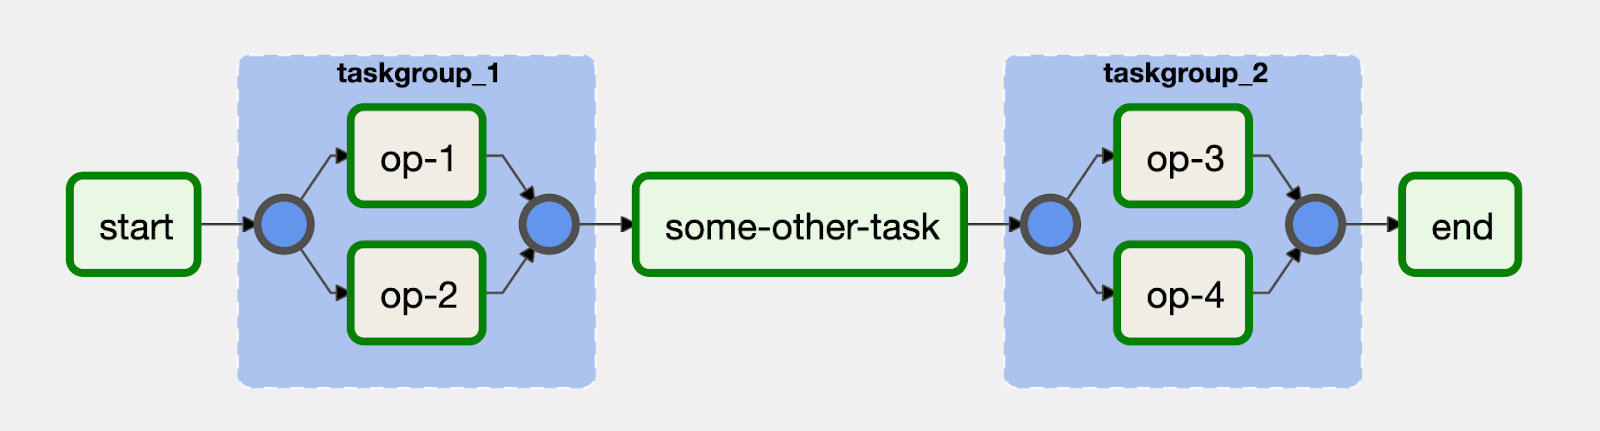 Tasks can be visually grouped together in the UI with the TaskGroup operator in Airflow 2